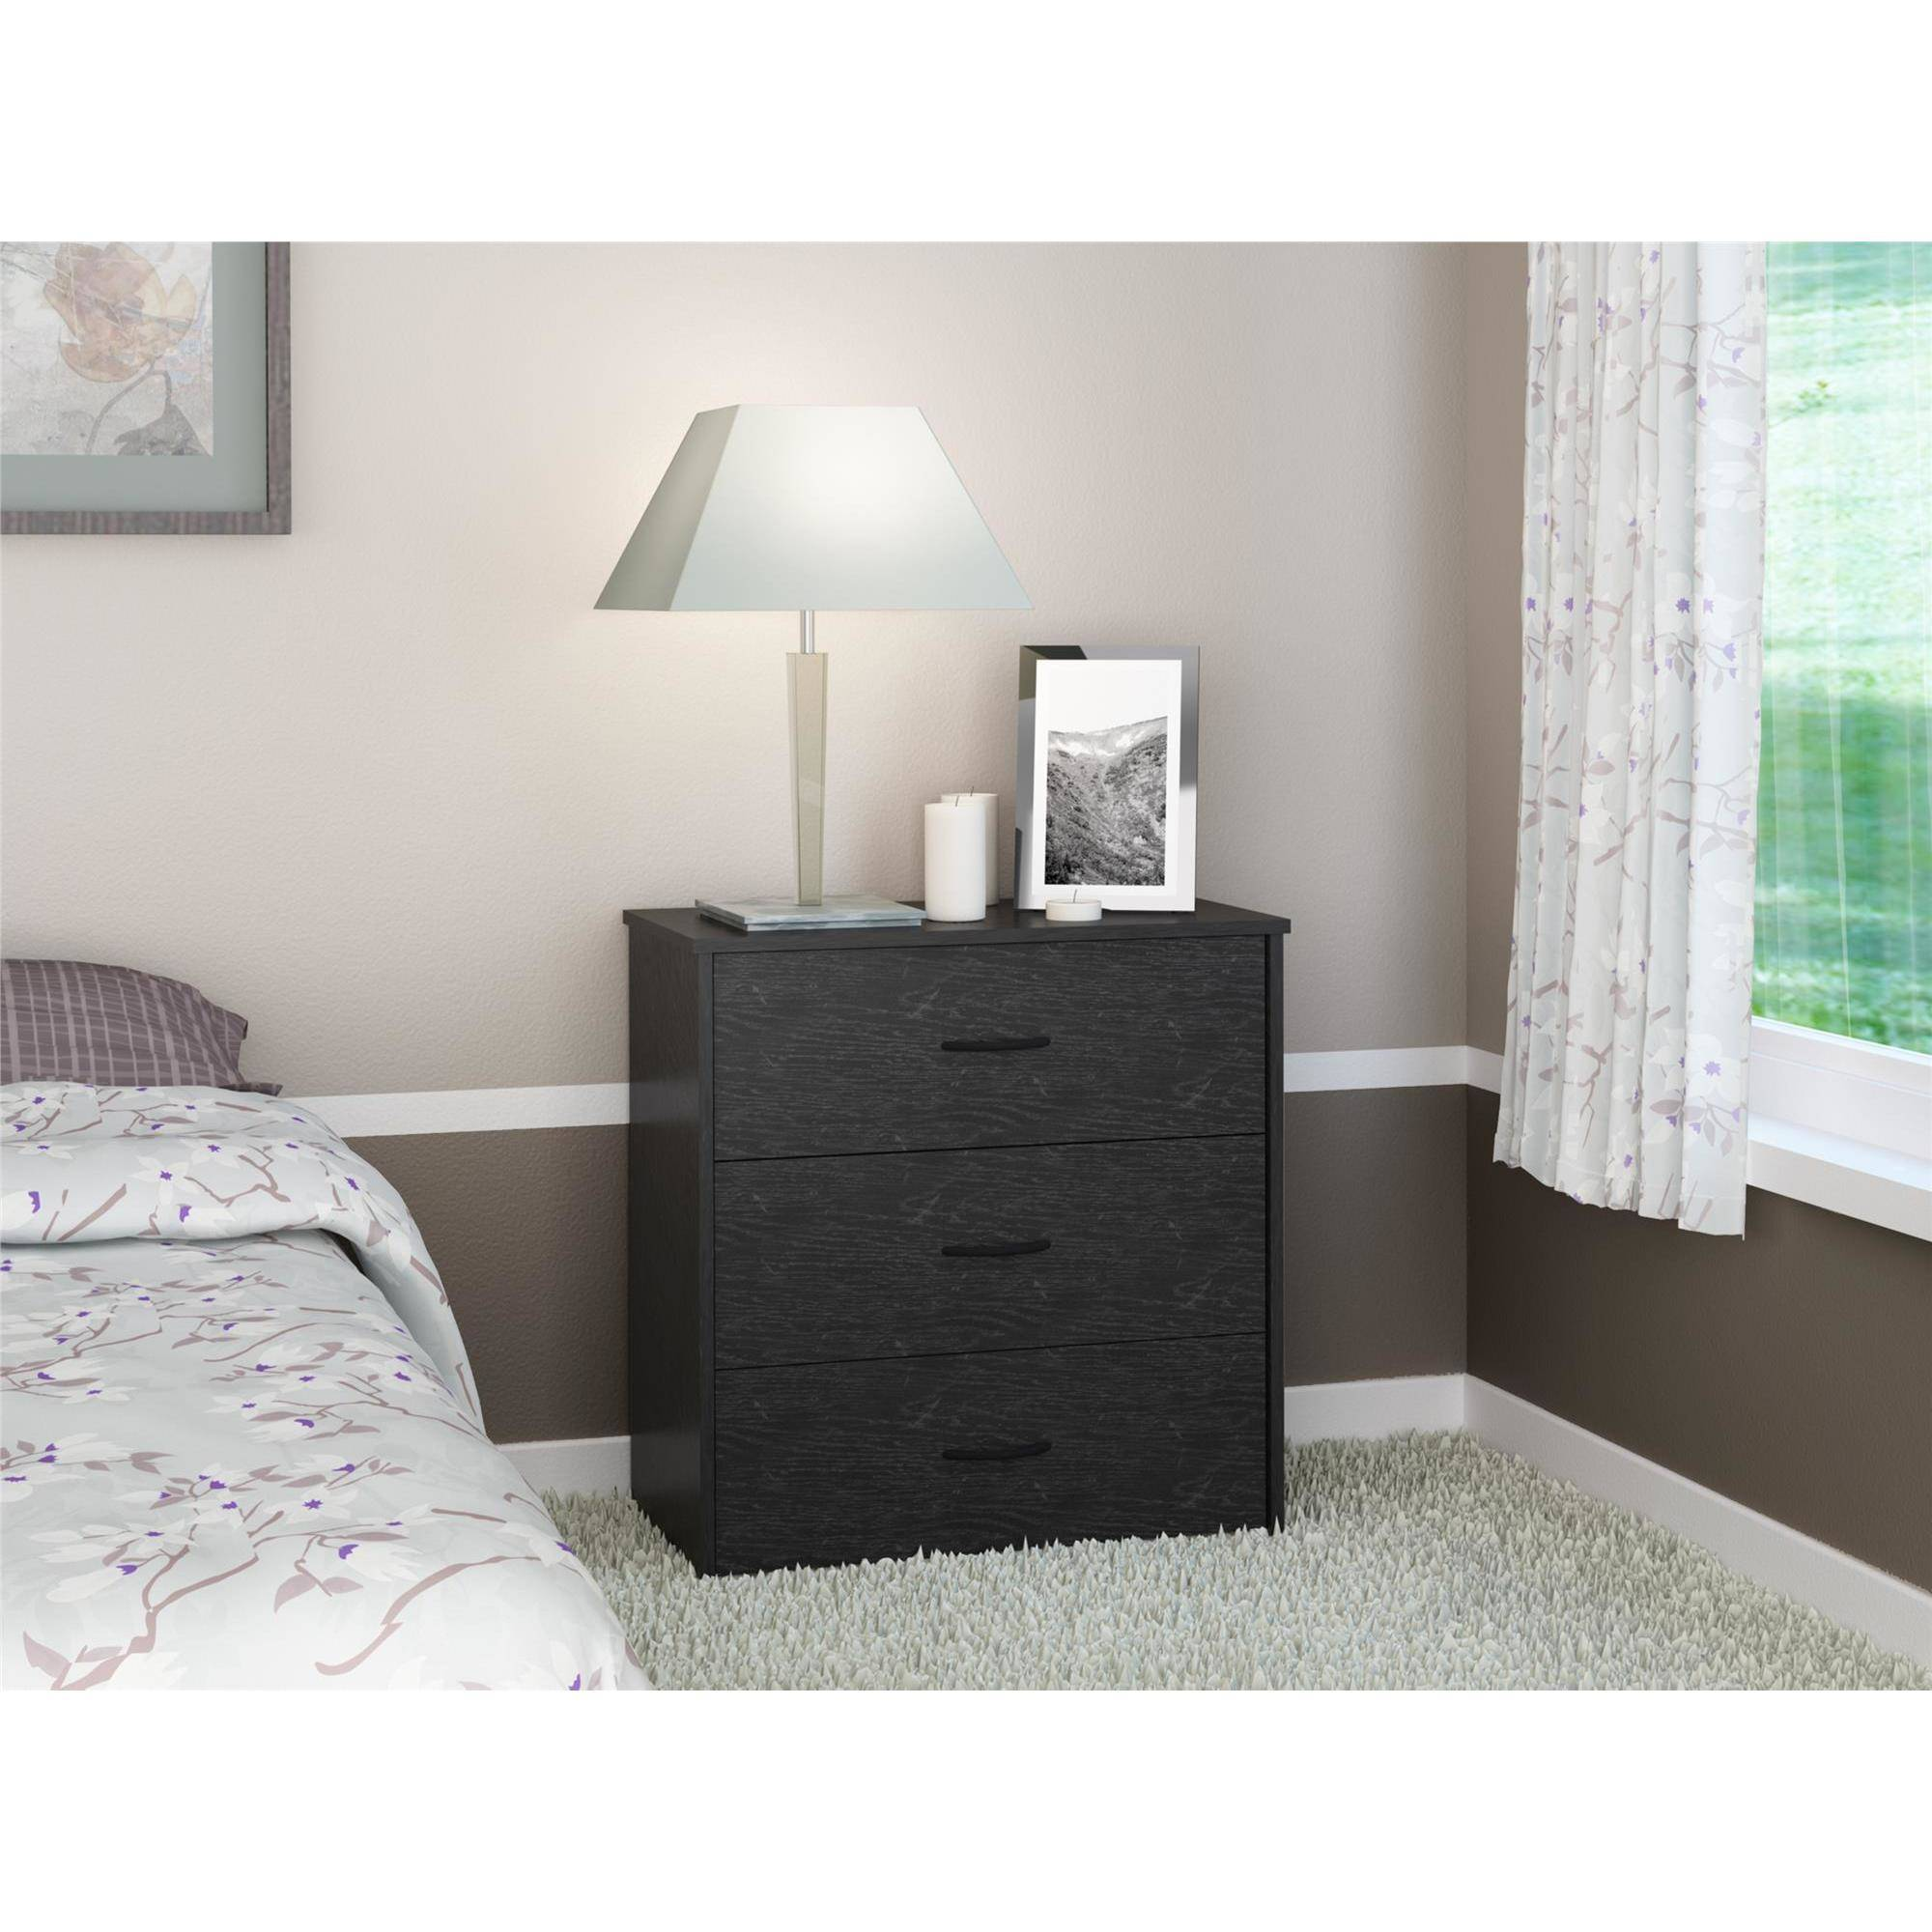 Mainstays 3 Drawer Dresser, Multiple Colors